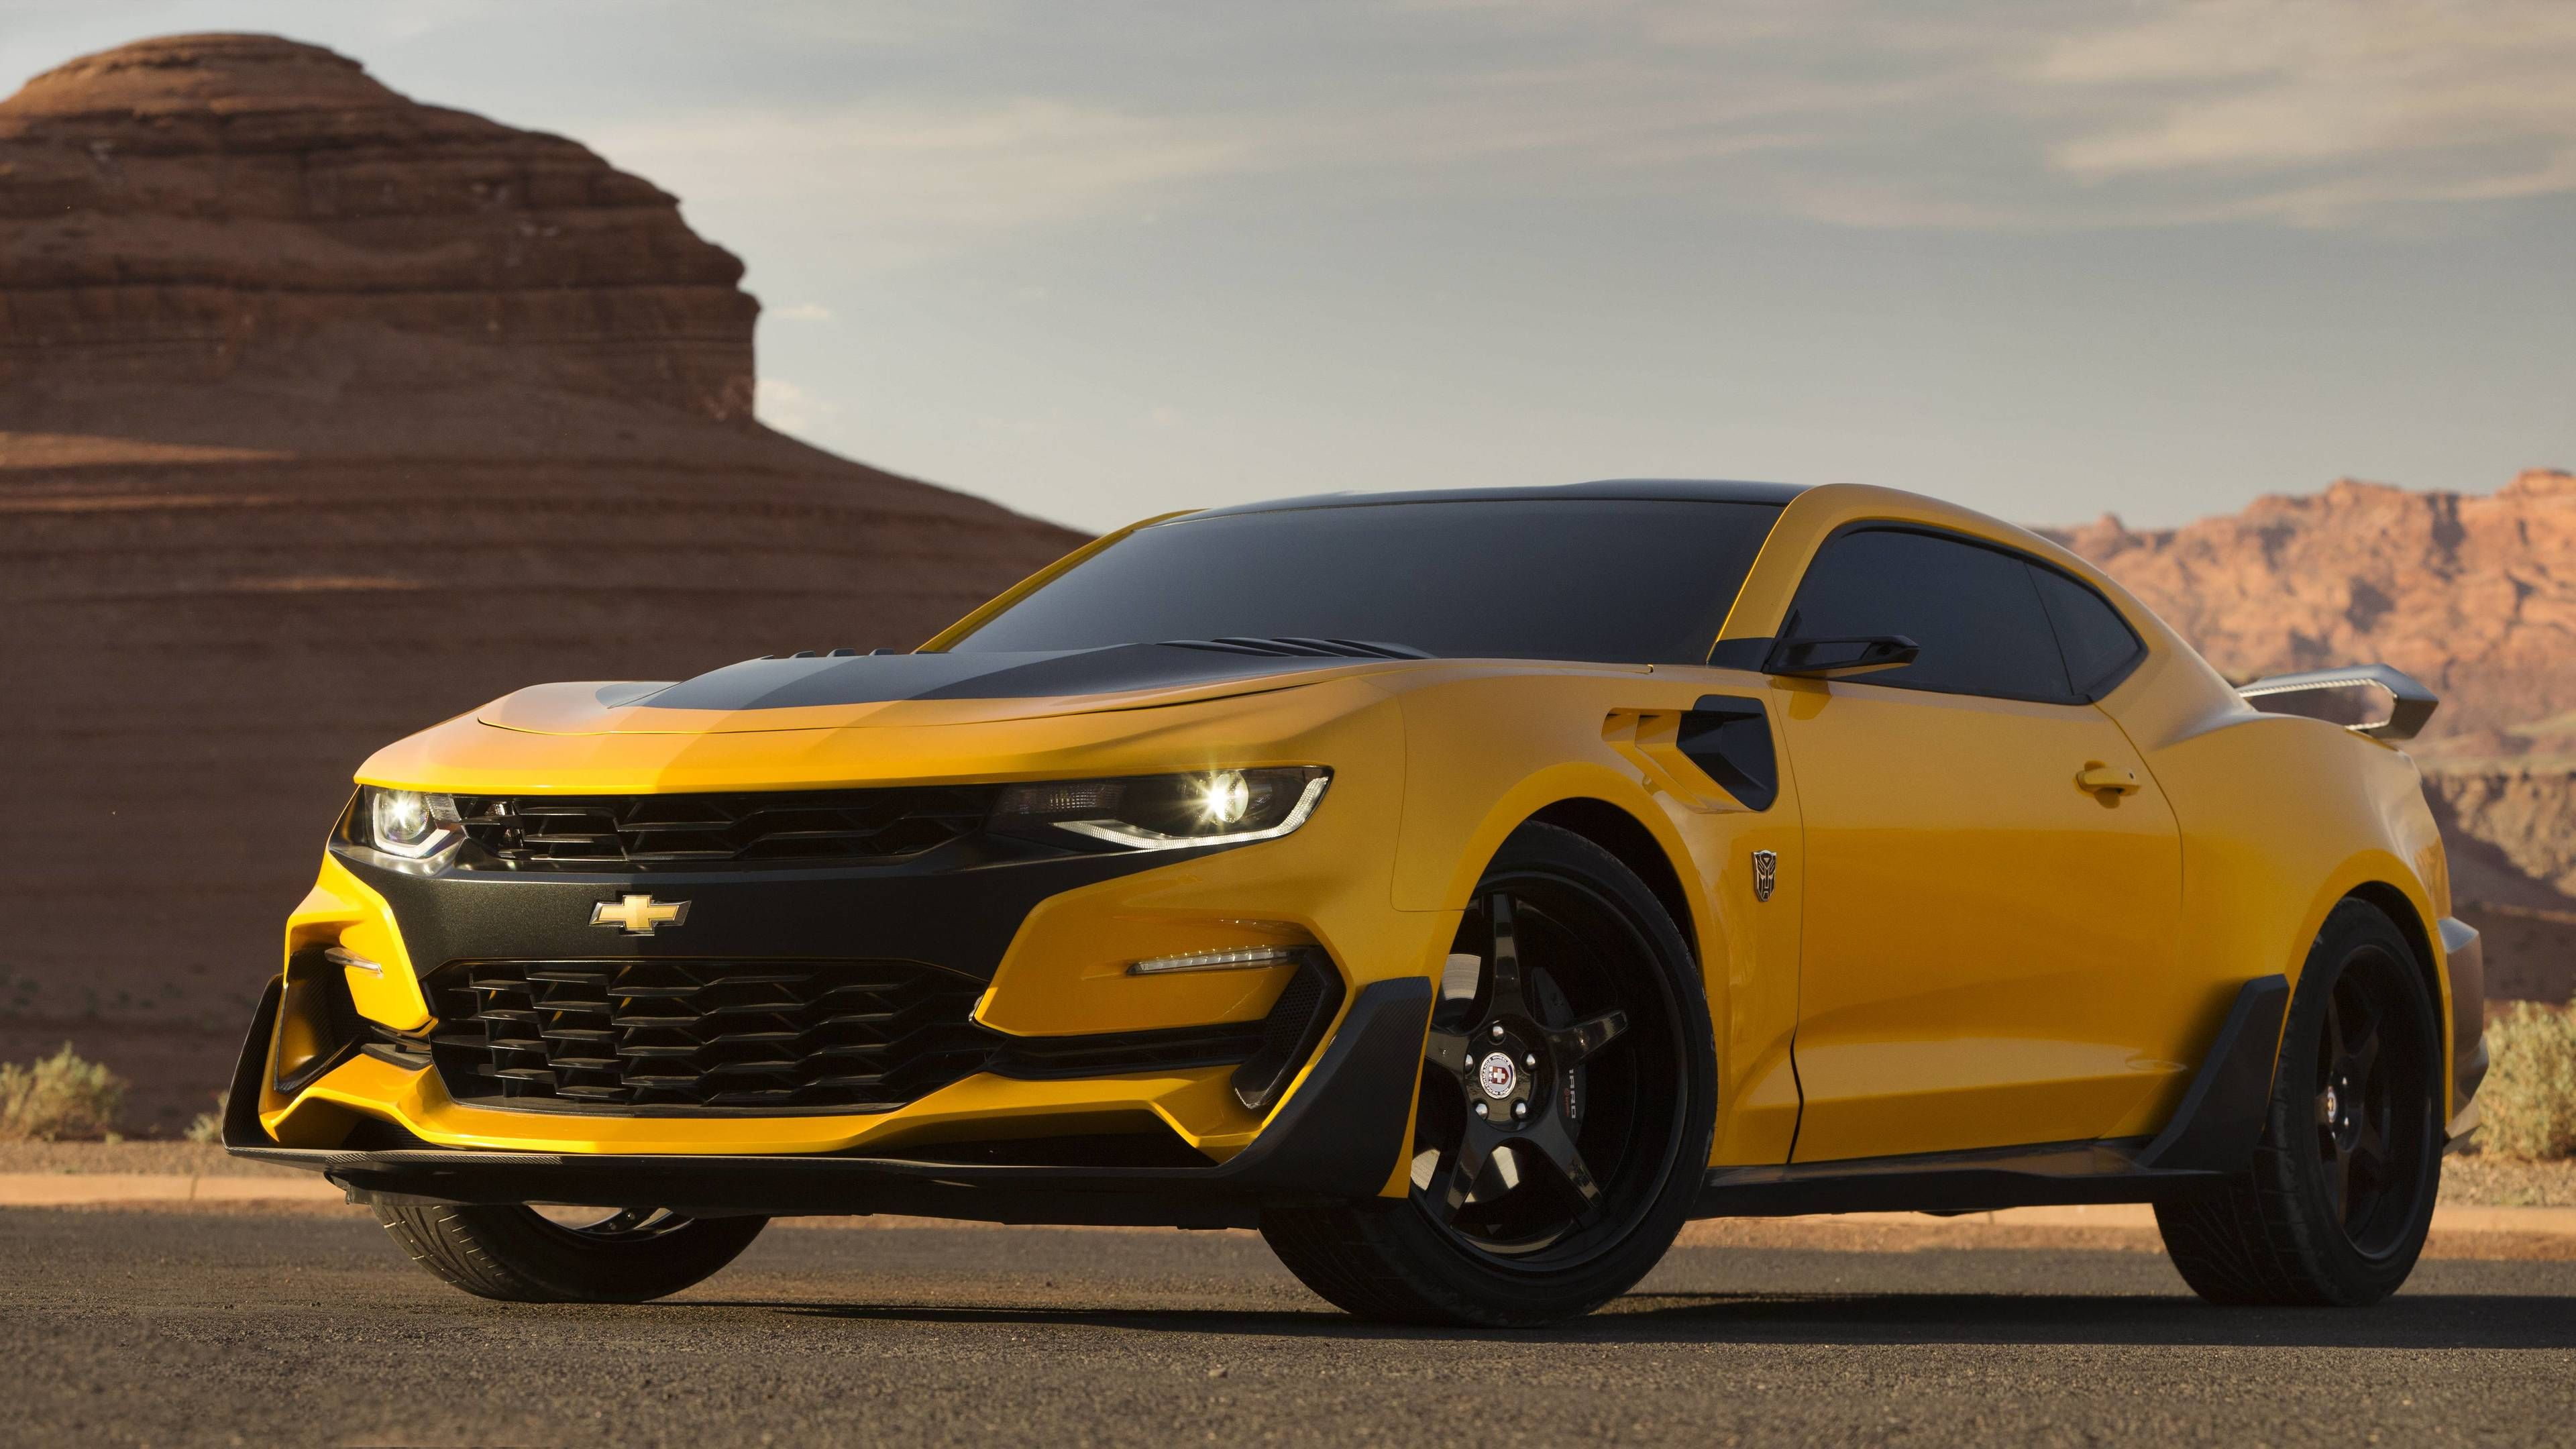 New Bumblebee Transfromers The Last Knight Transformers The Last Knight Wallpapers Transformers 5 Wallpaper Chevrolet Camaro Bumblebee Chevy Camaro Zl1 Camaro